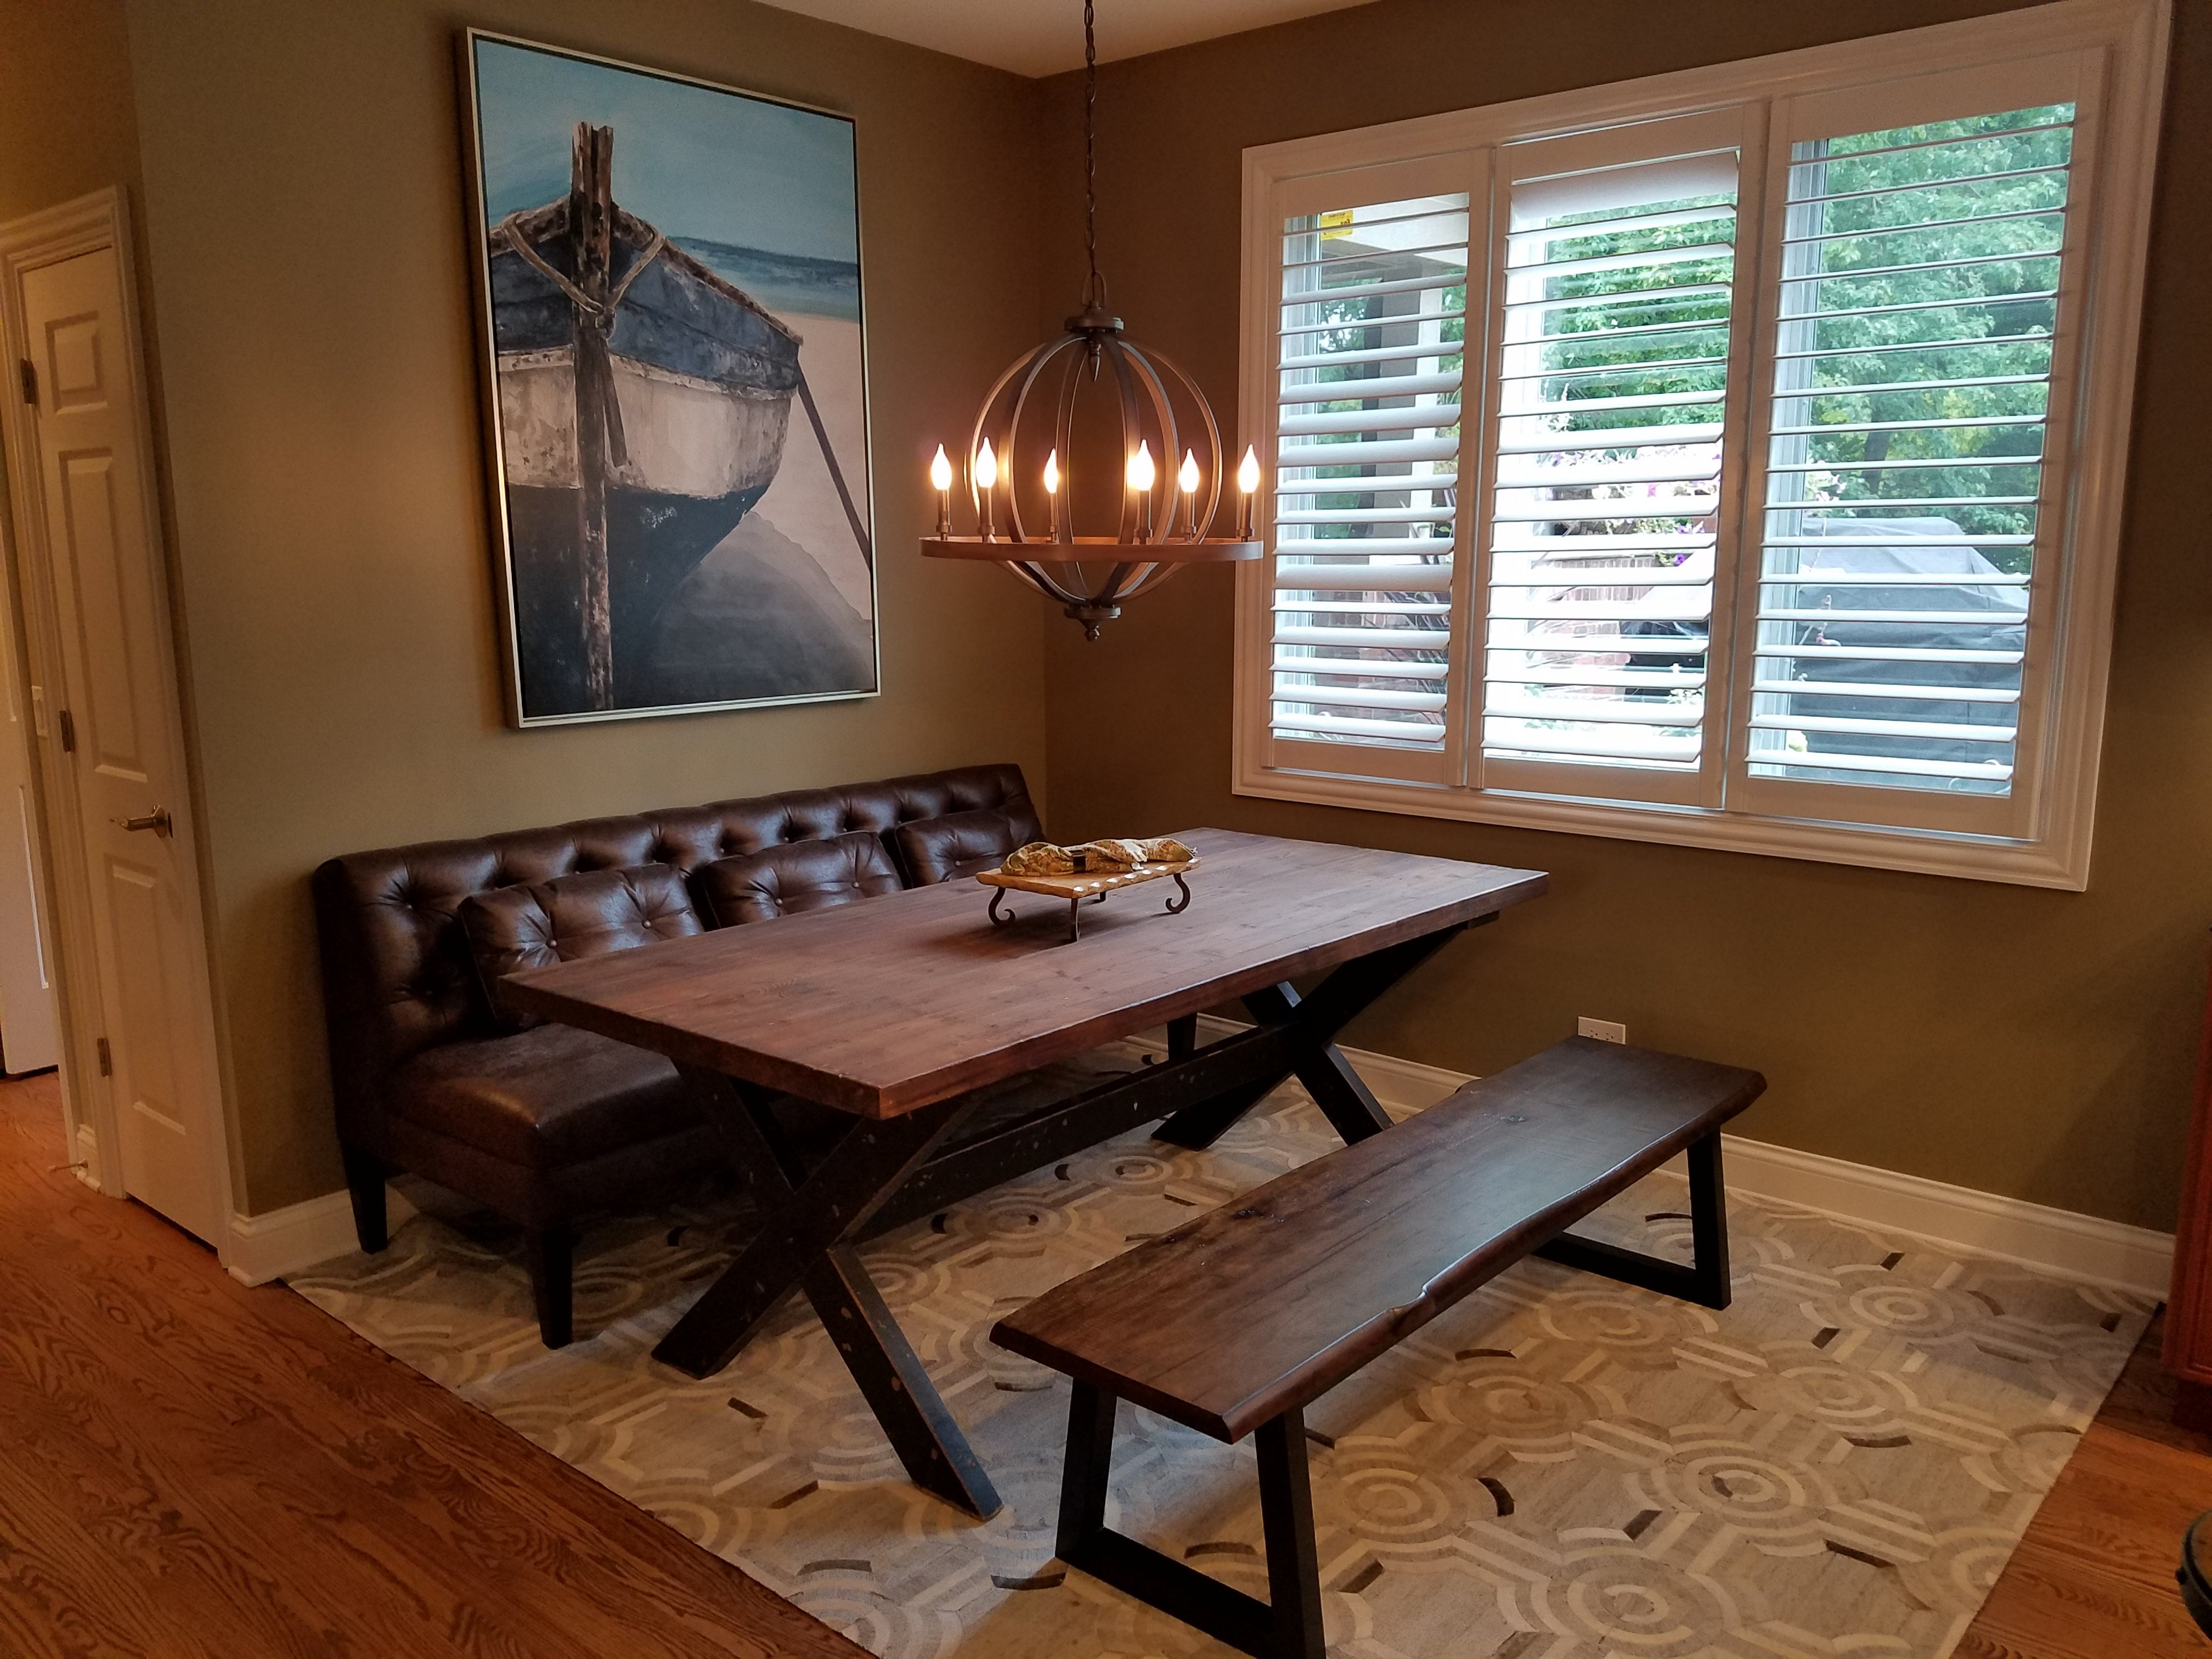 Kitchen Remodeling and Design, eat-in kitchen layout, dining bench with back, boat artwork, rustic chandelier, cowhide area rug, rustic kitchen table, olive green kitchen paint color, white wood shutters, white trim